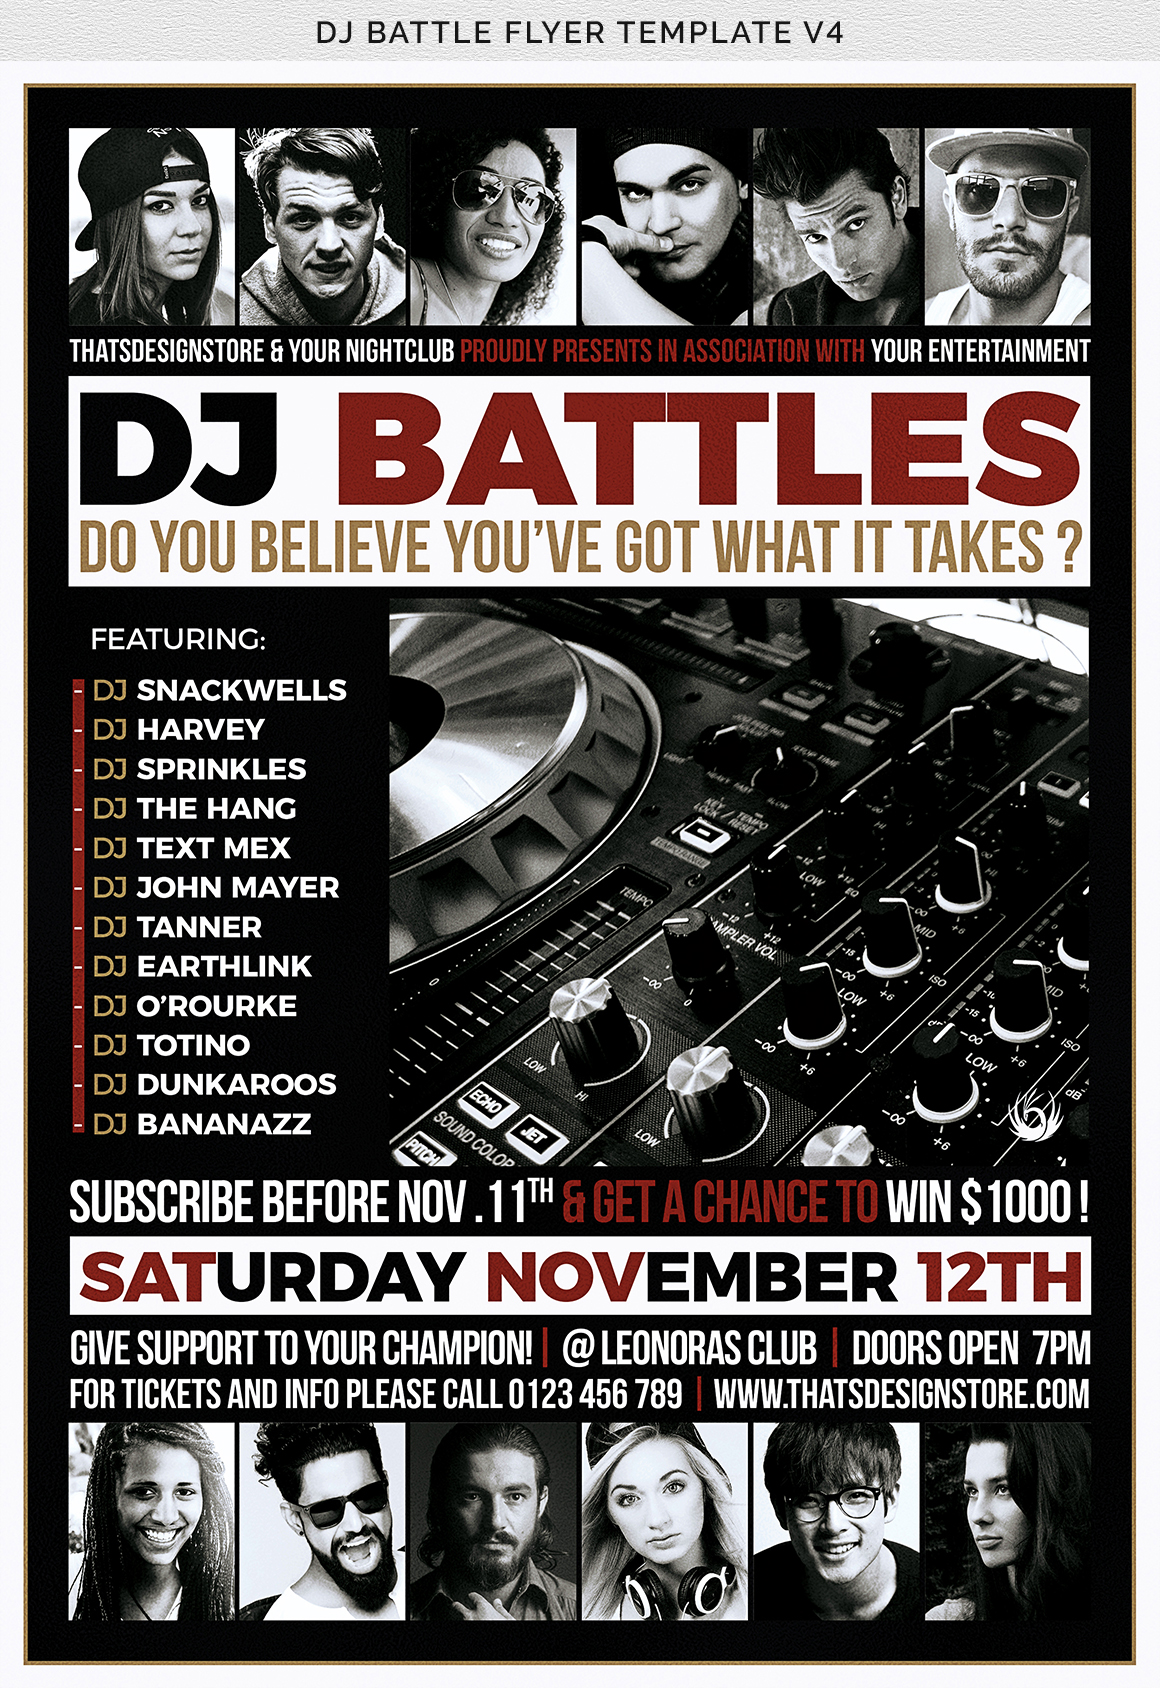 DJ Battle Flyer Template V4 example image 8